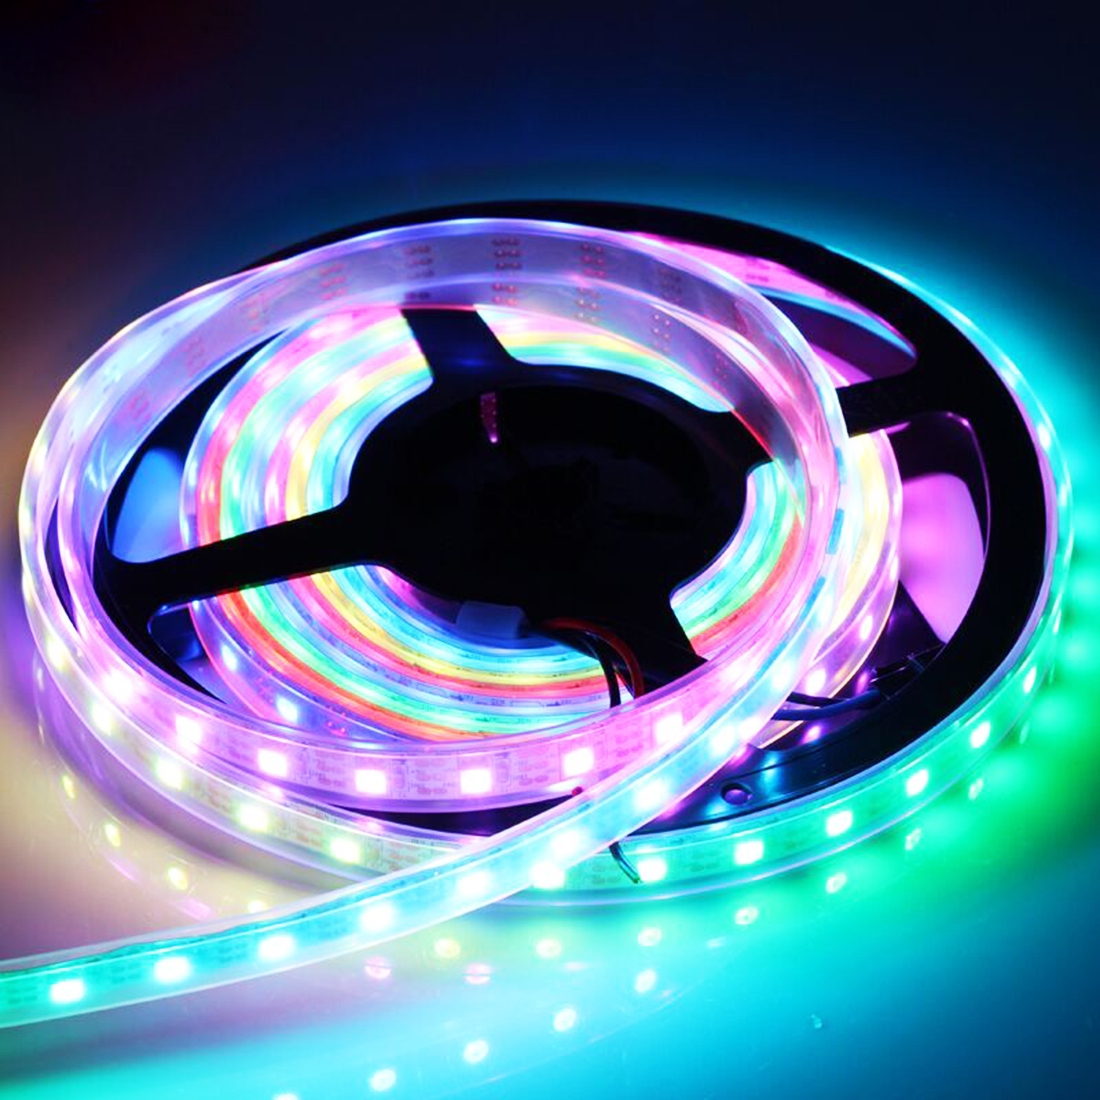 3m IP65 Waterproof Colorful Light Solar Powered LED Rope Strip Light, 90 LEDs SMD 2835 Decoration Fairy Light